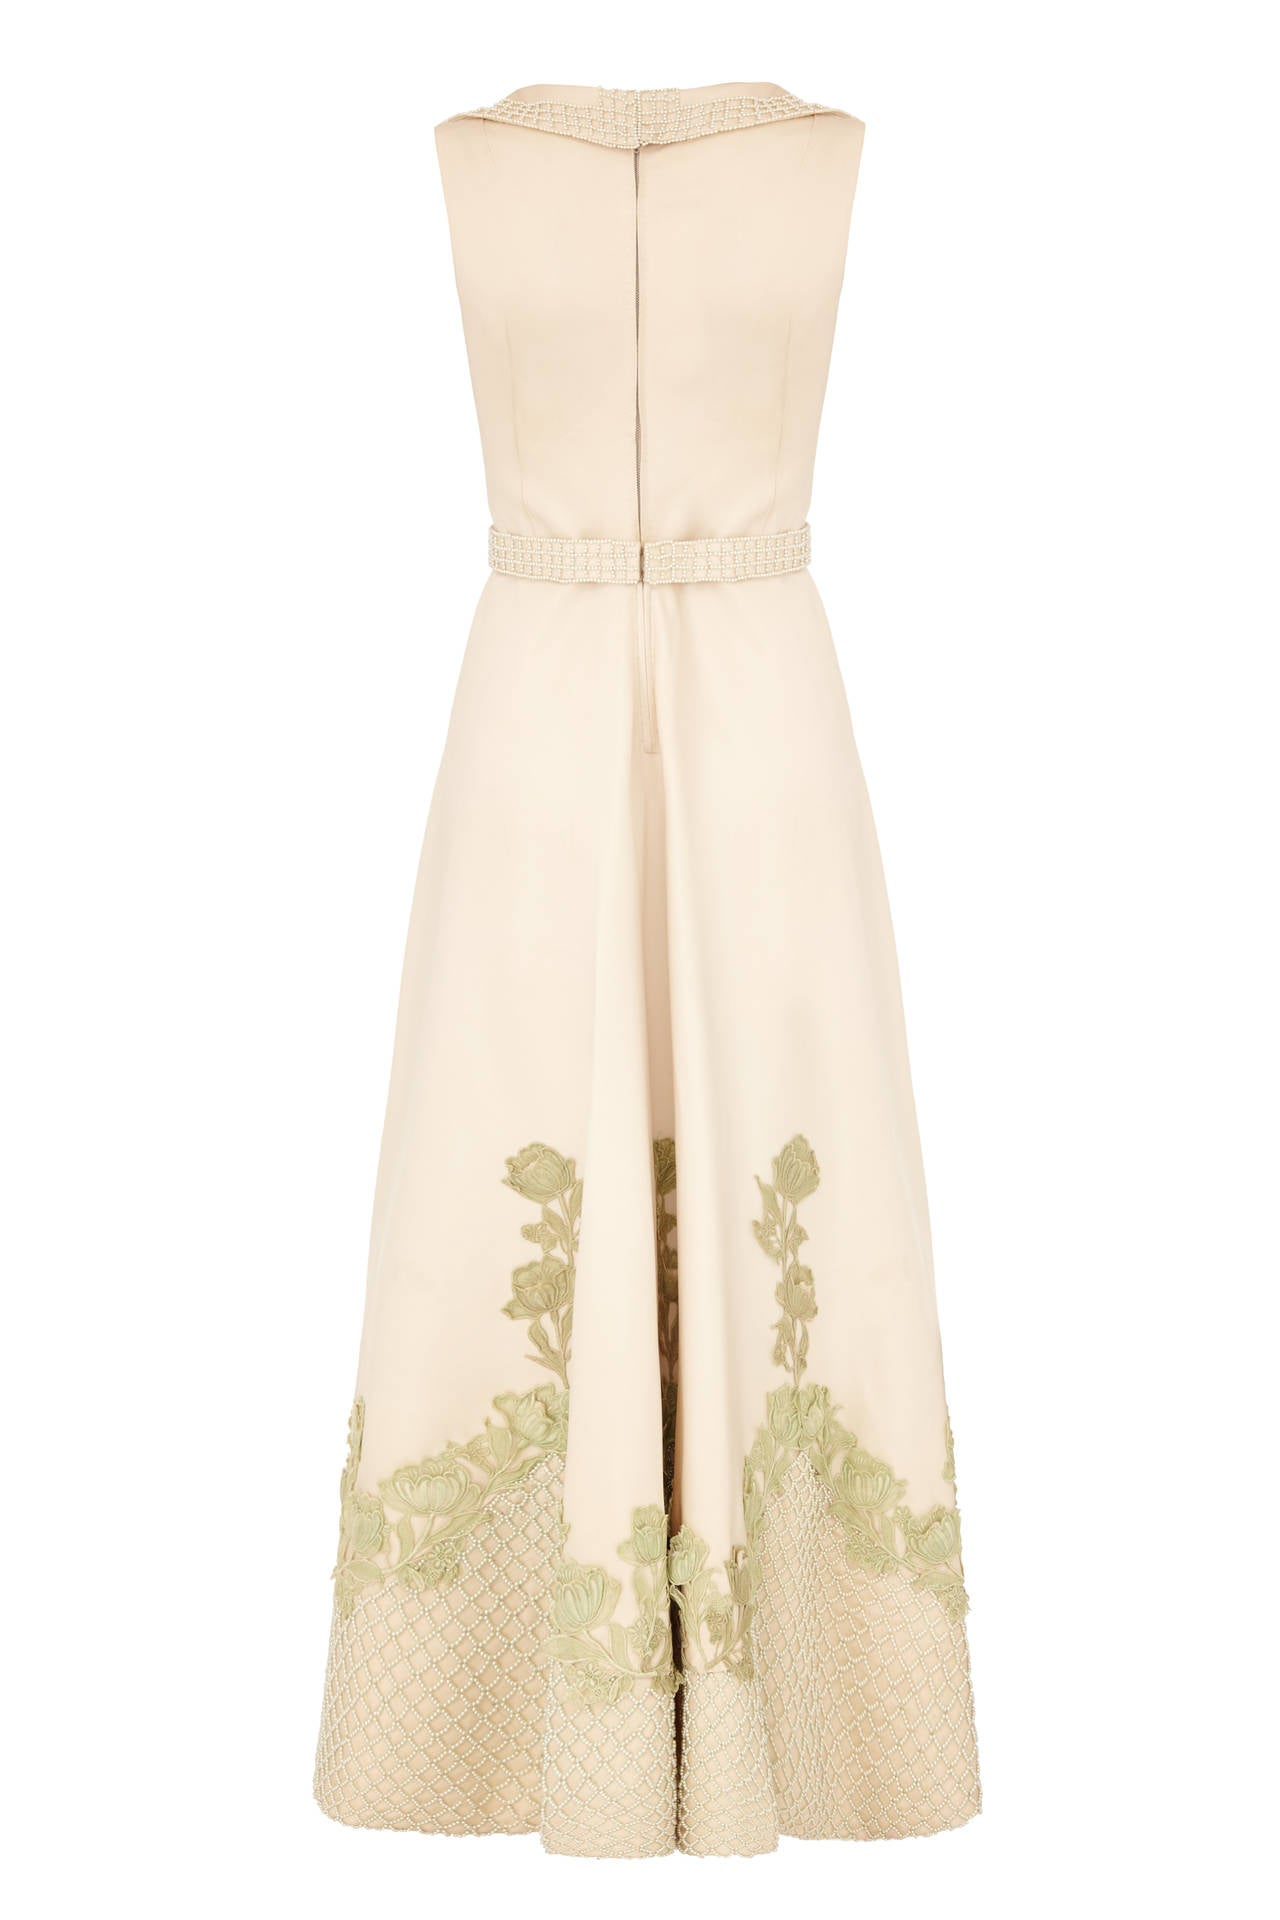 Exceptional 1950s Couture Made Cream Silk Gown 2